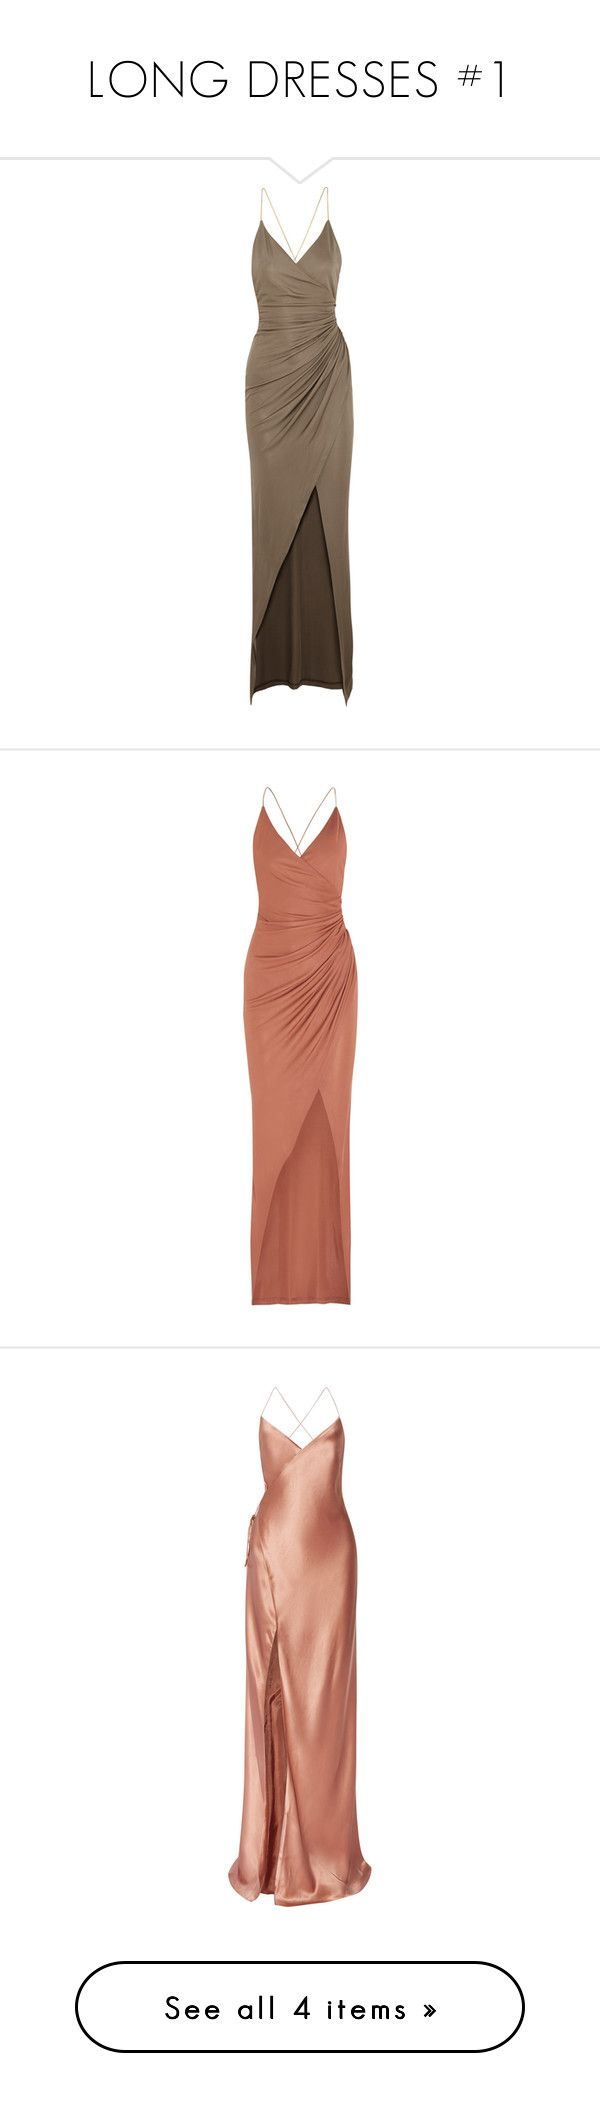 """LONG DRESSES #1"" by herllequin ❤ liked on Polyvore featuring dresses, gowns, long dress, vestidos, balmain, mushroom, maxi dresses, long dresses, brown maxi dress and wet look dress"